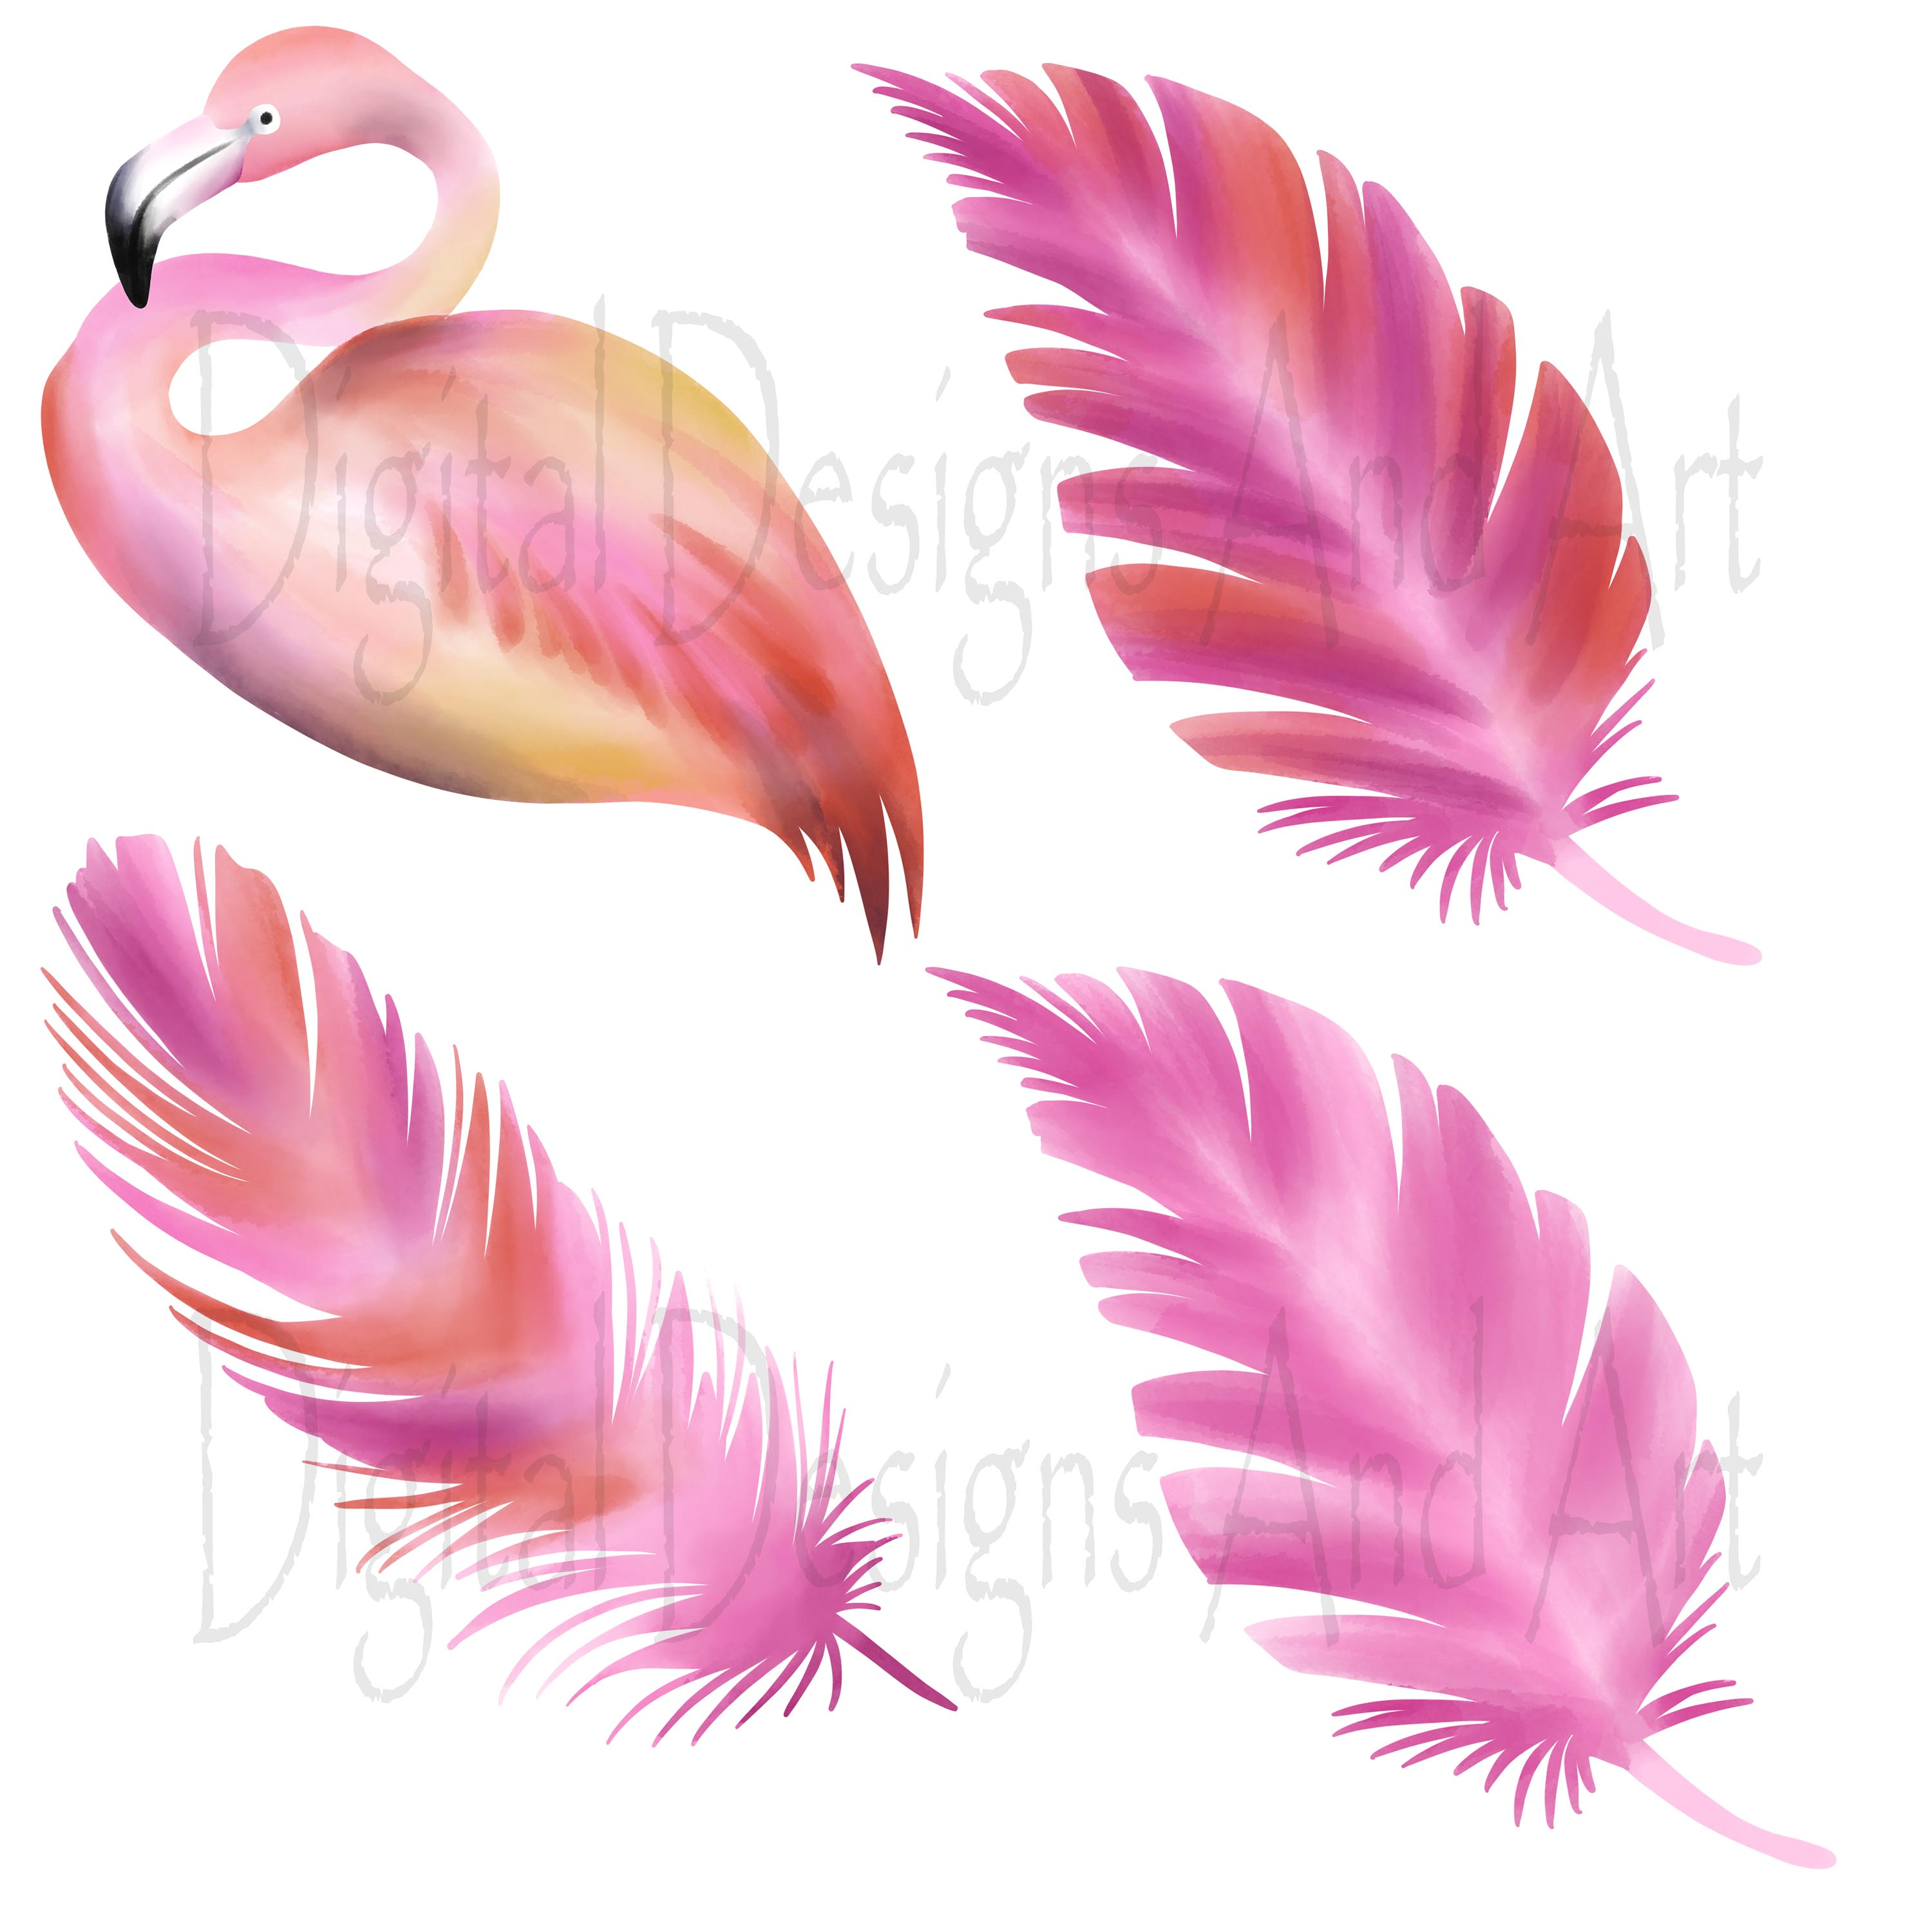 Pink flamingo clipart example image 4